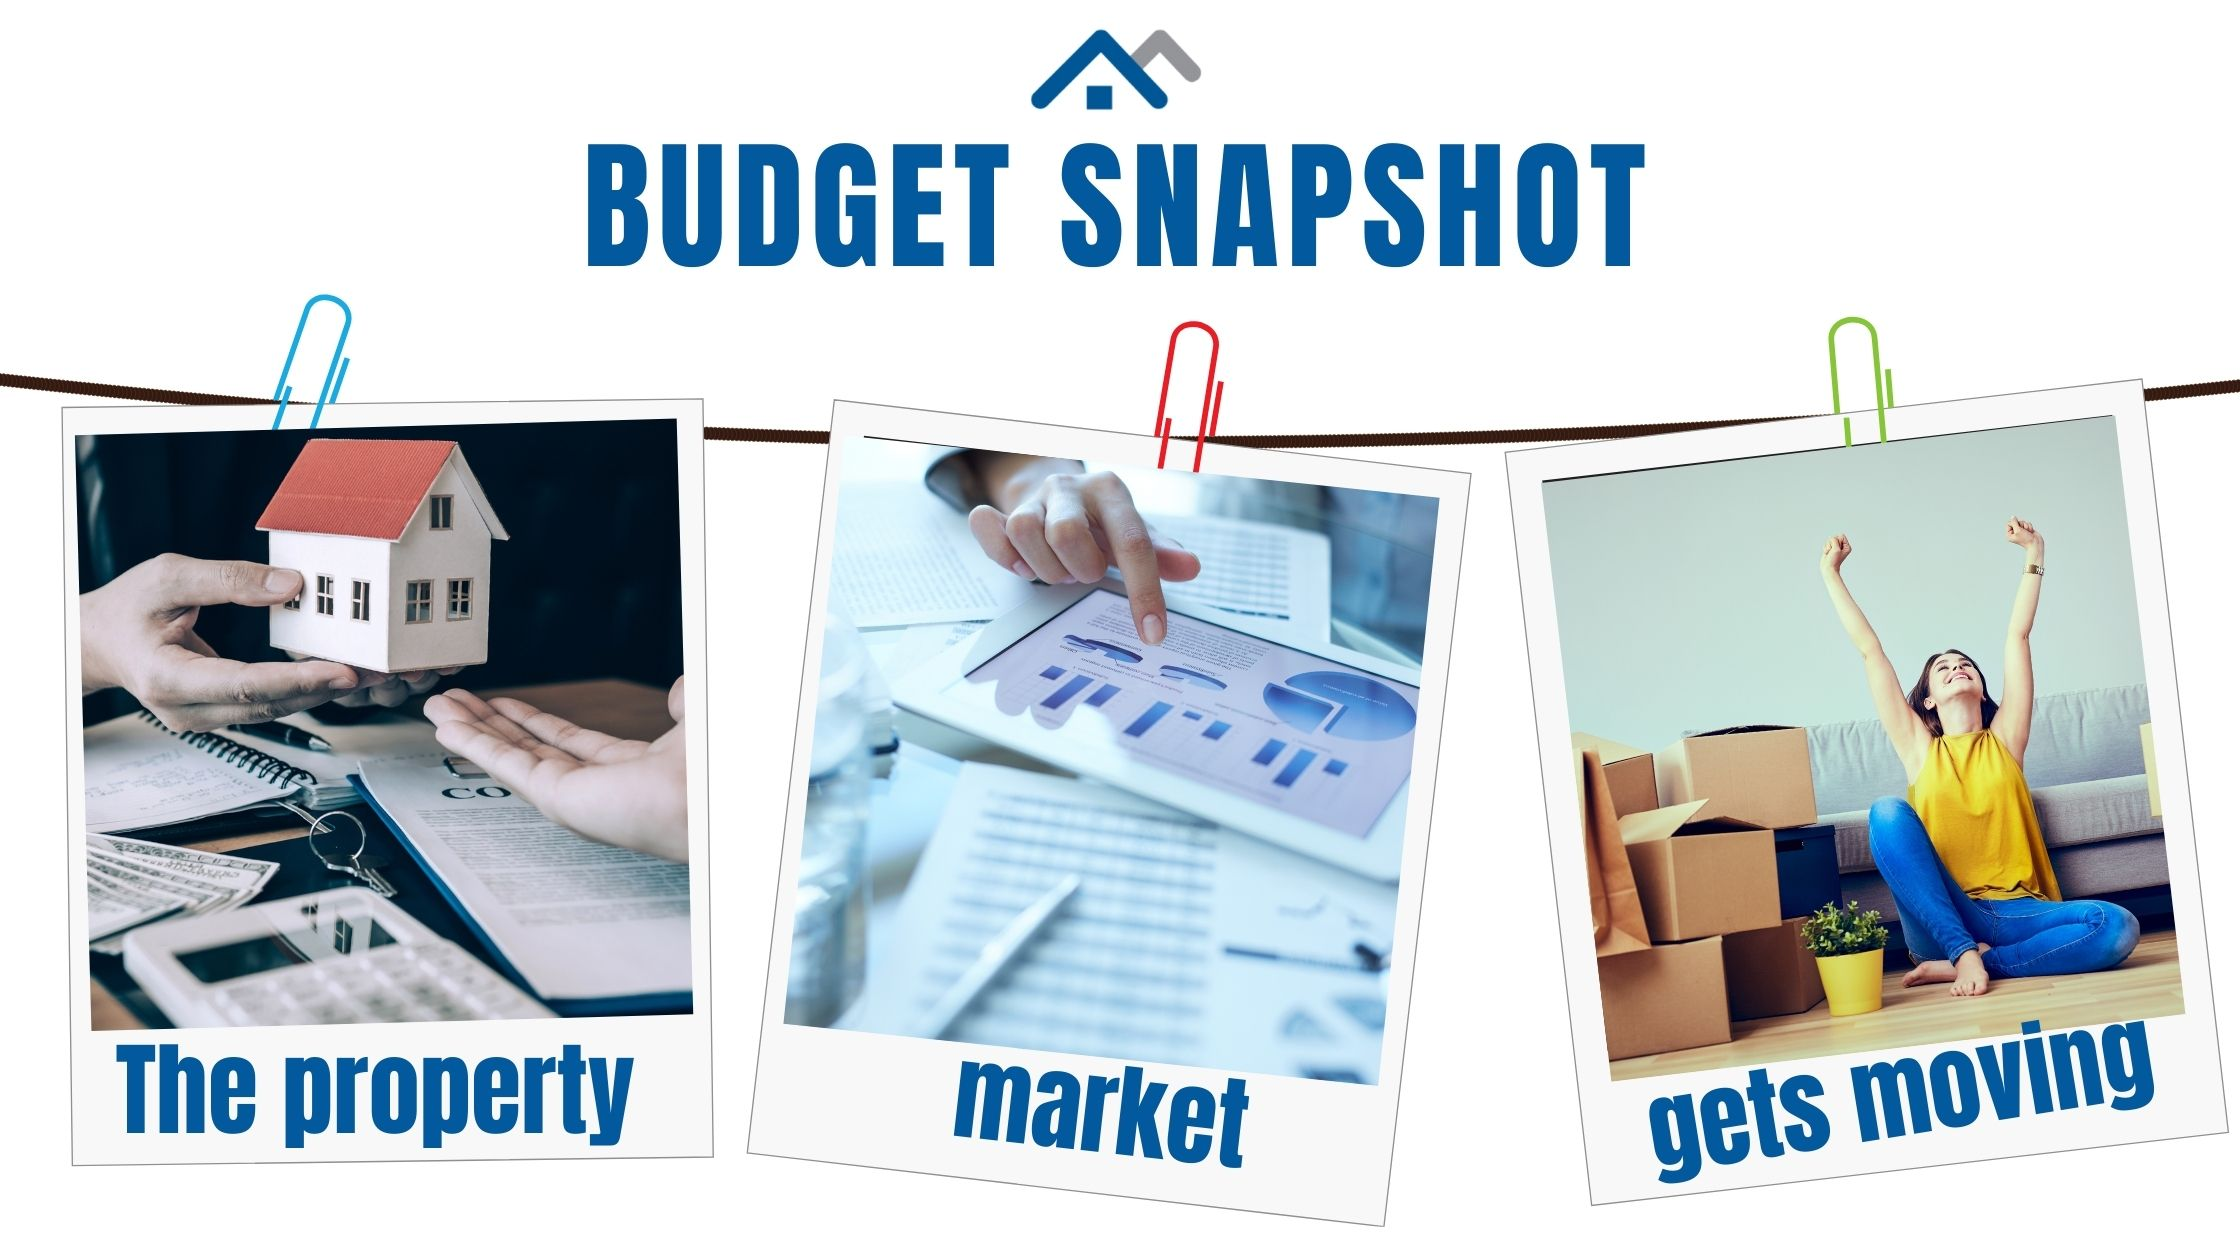 Budget Snapshot, the property market gets moving